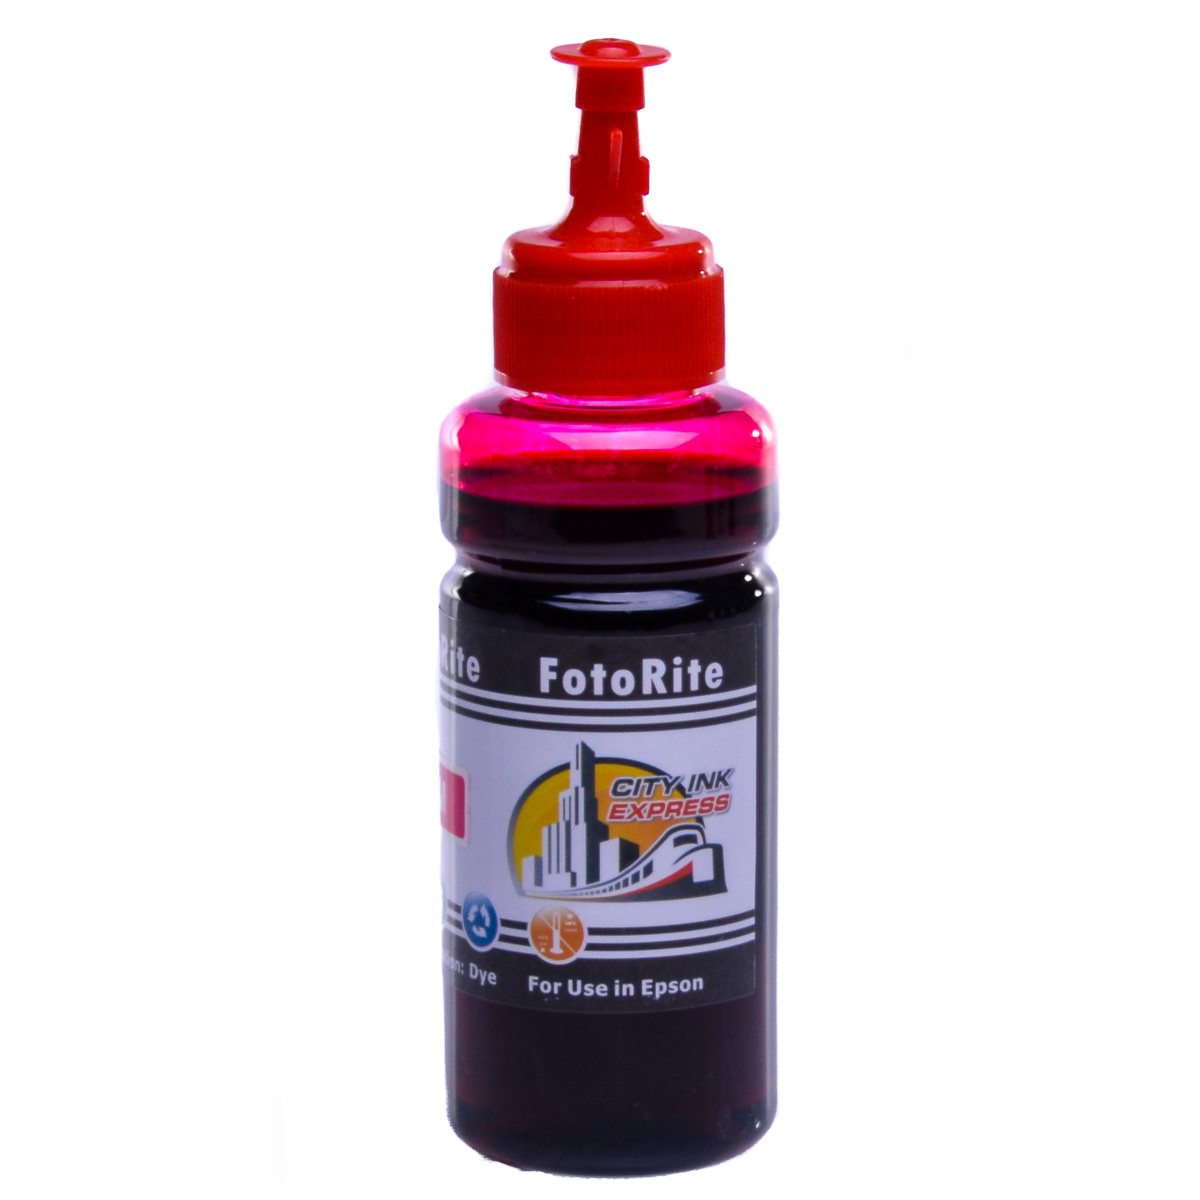 Cheap Magenta dye ink replaces Epson XP-305 - T1813